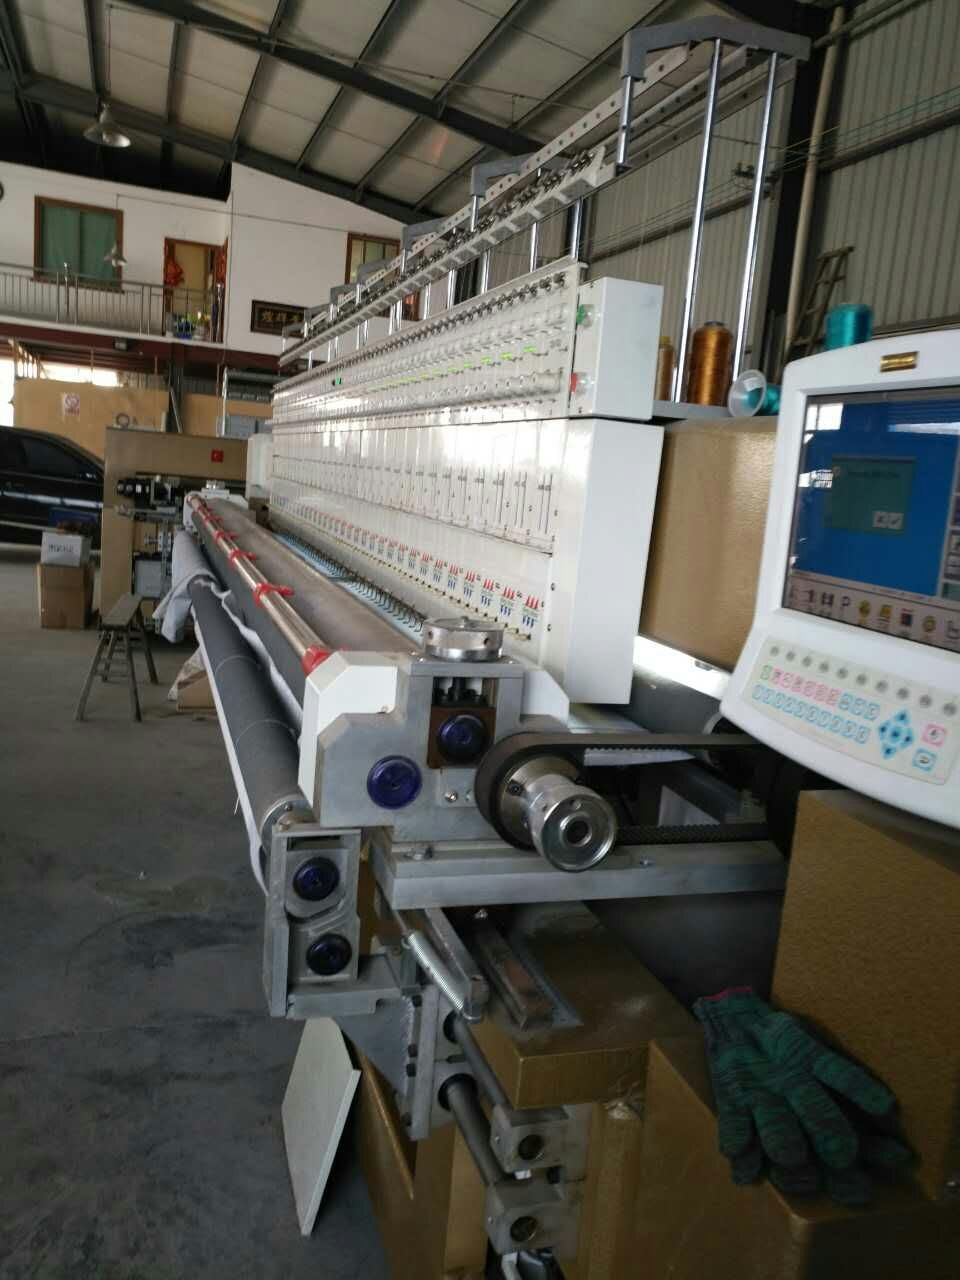 Hye-Q Quilting Embroidery Machine